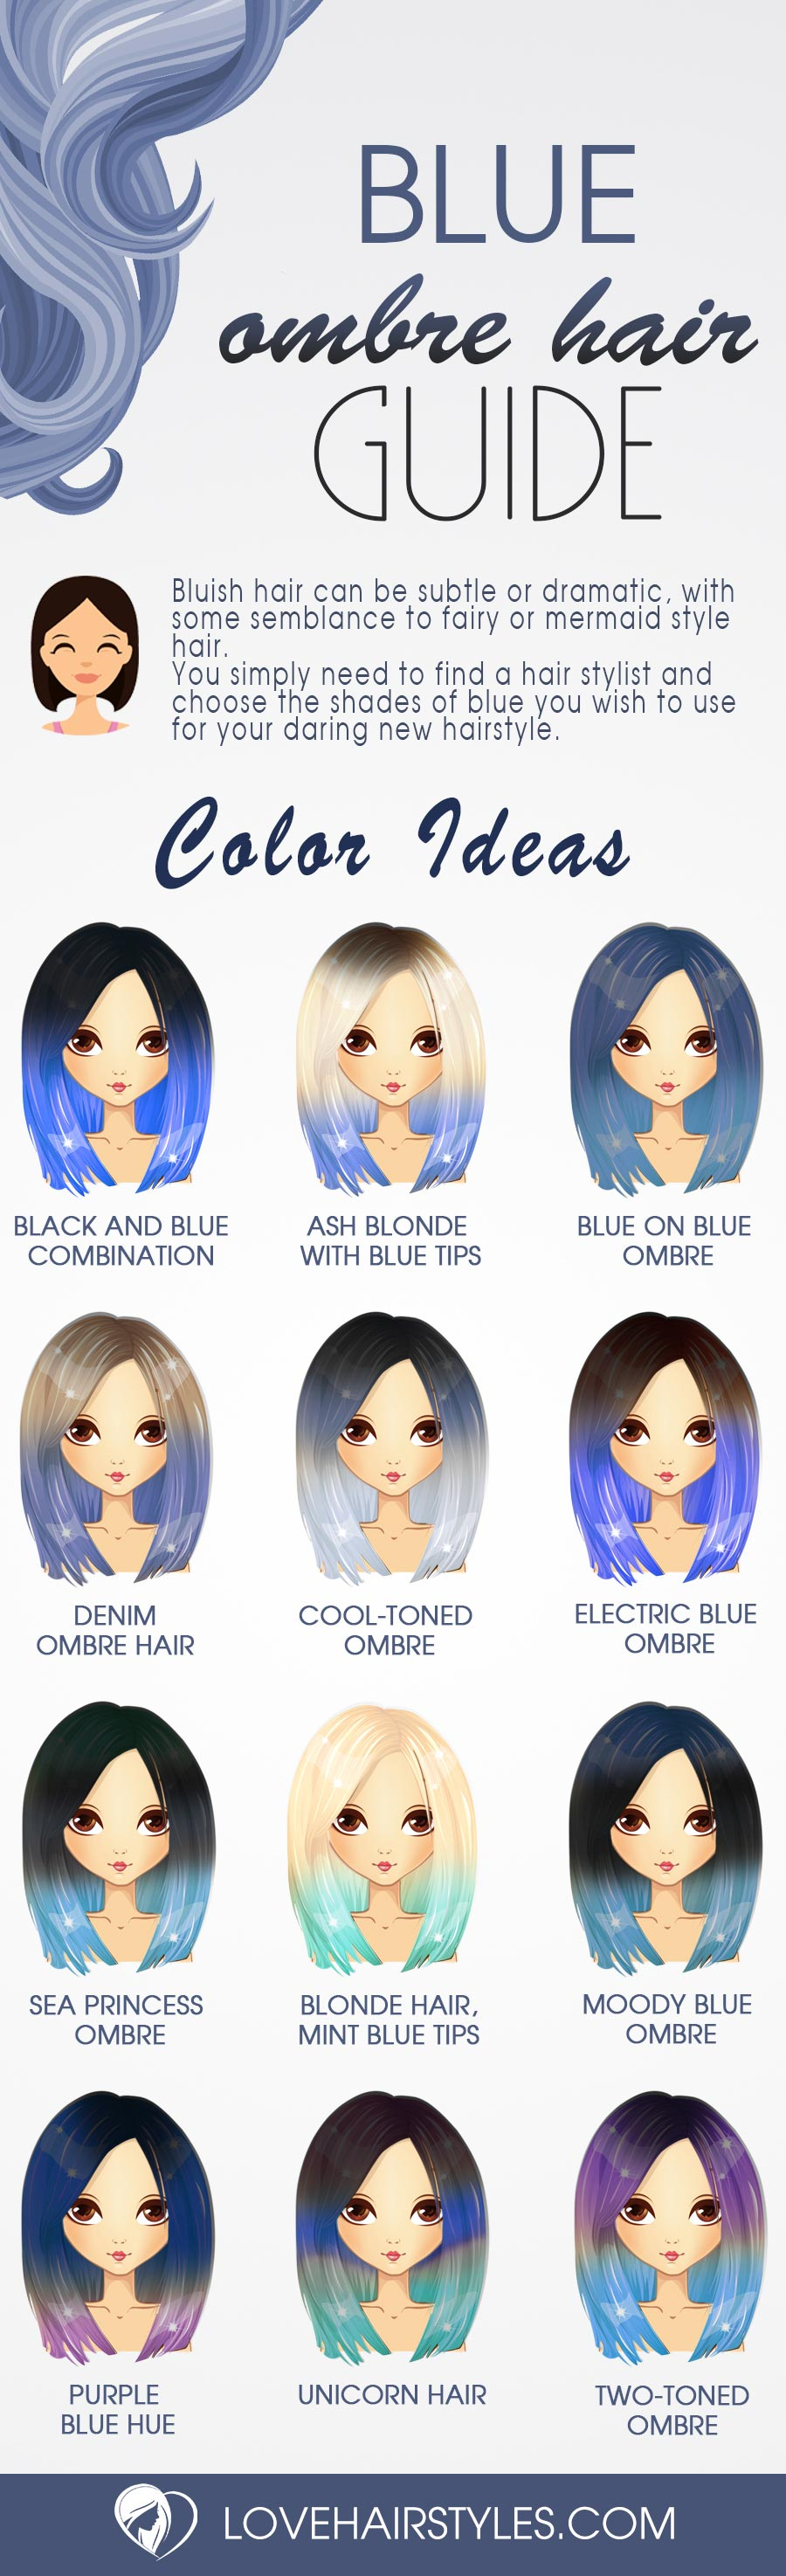 Stunning Styles for Blue Ombre Hair That Will Make You Flip!